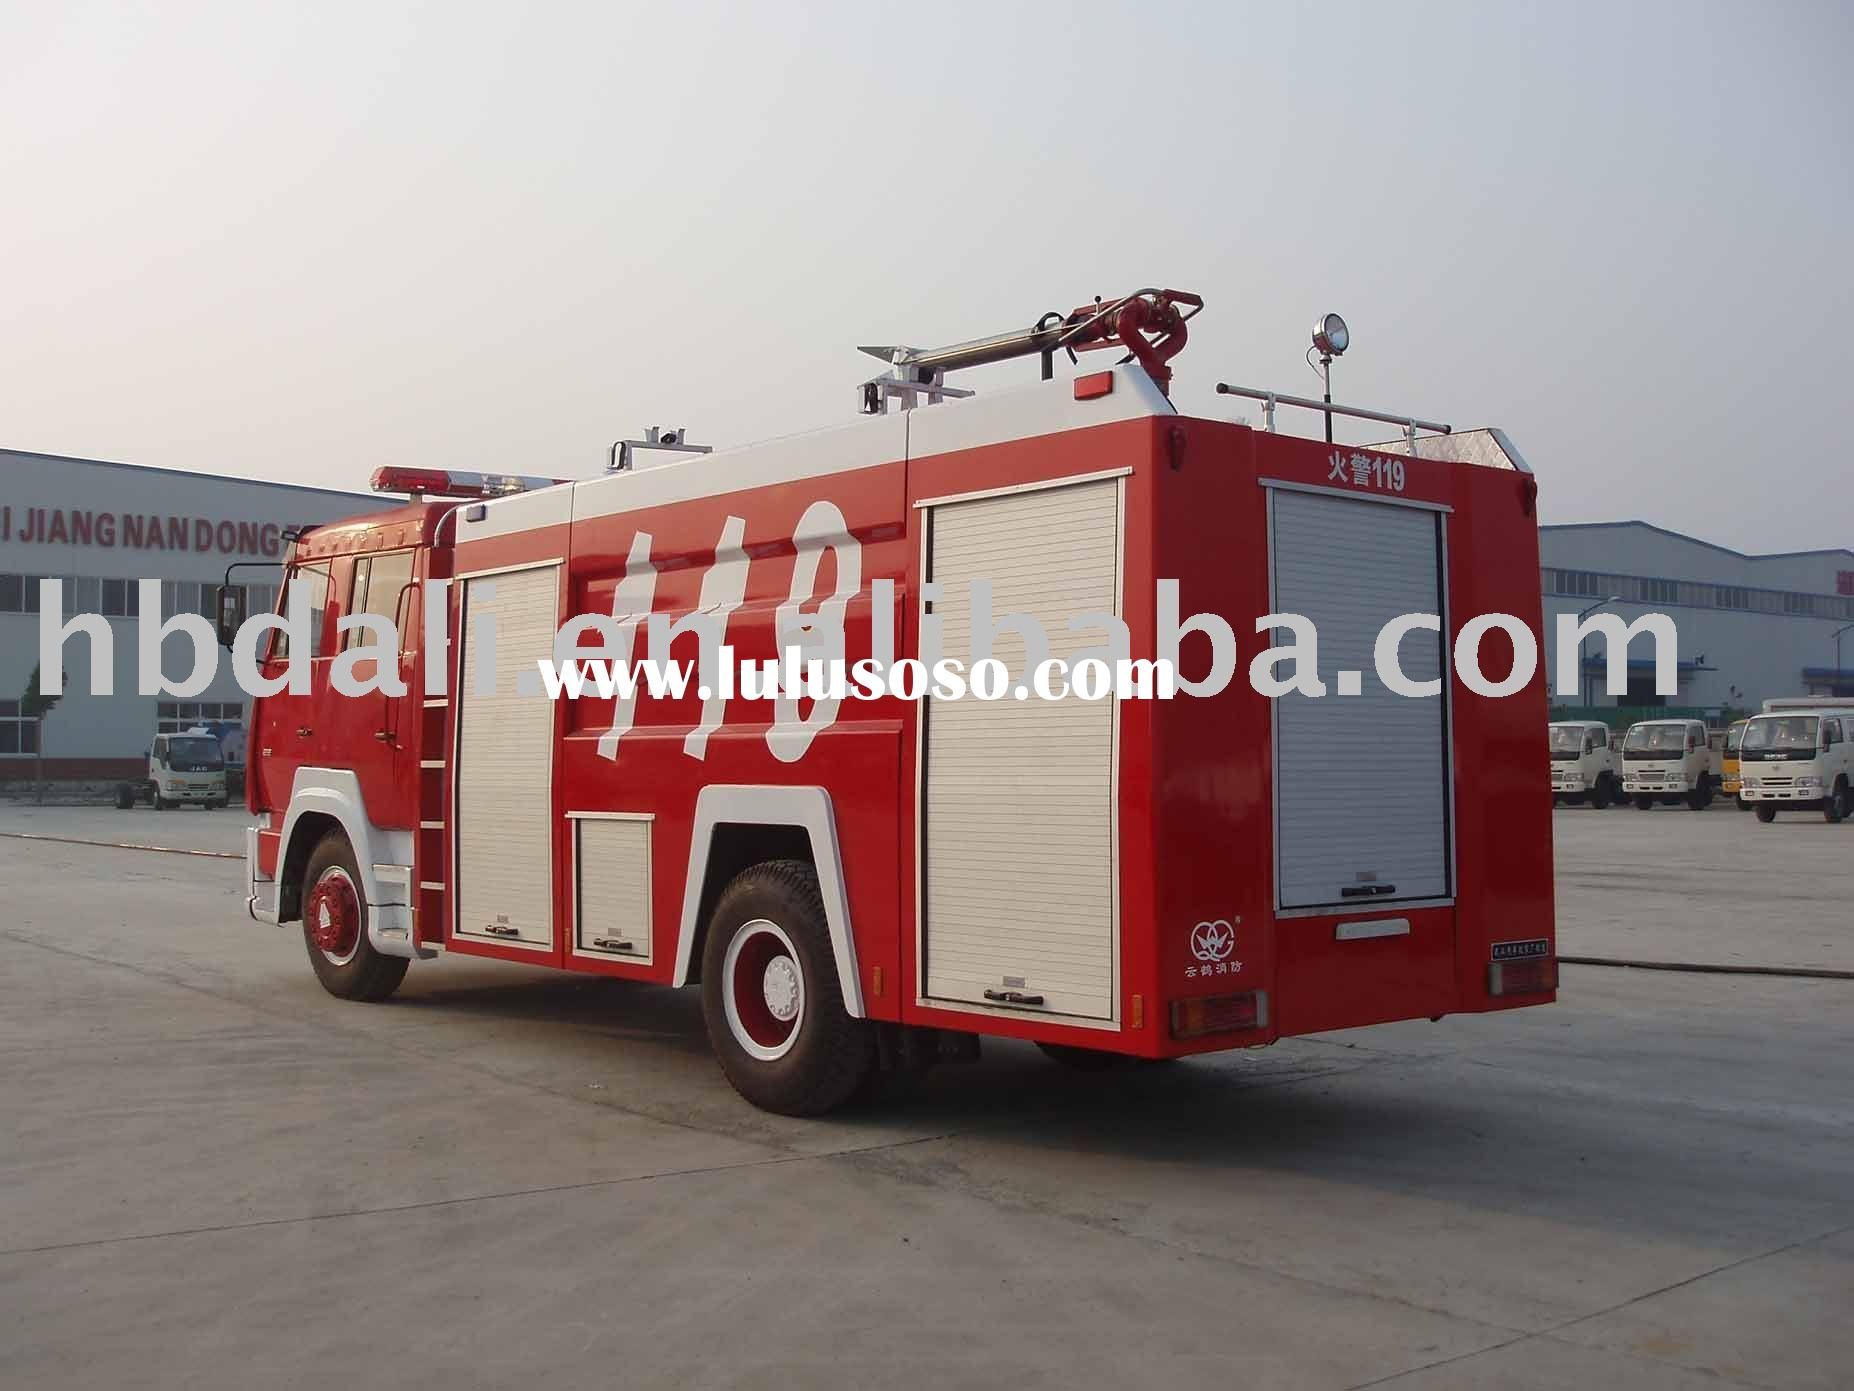 Sinotruk Styer 4*2 Fire Truck 6-8Cbm--One of the biggest fire truck manufacturer,0086 722 3230587